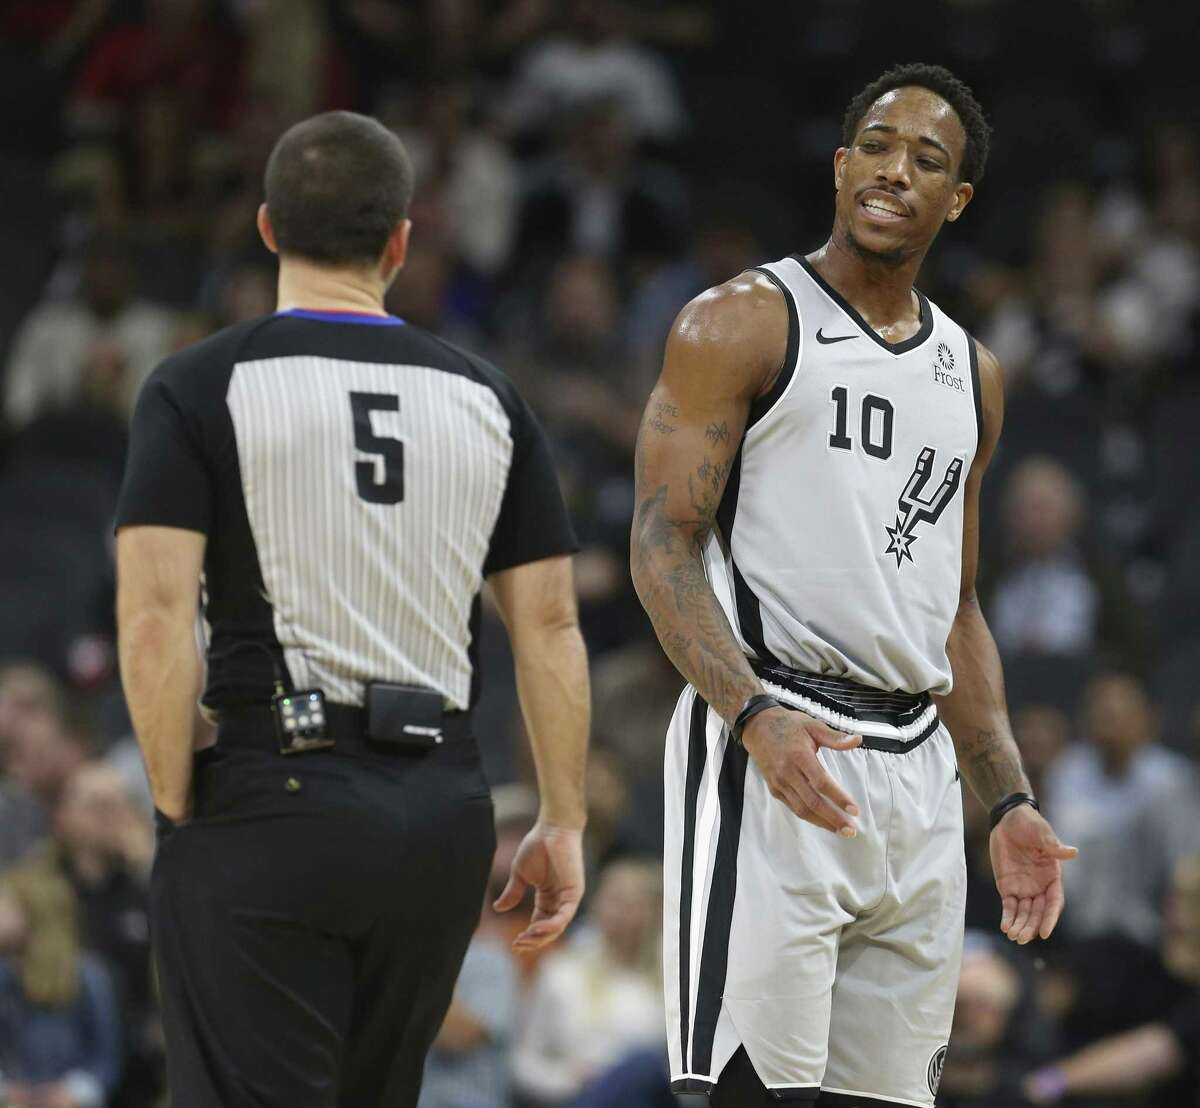 The Spurs' DeMar DeRozan reacts after he was called for a flagrant foul in the first half. DeRozan finished with 18 points.